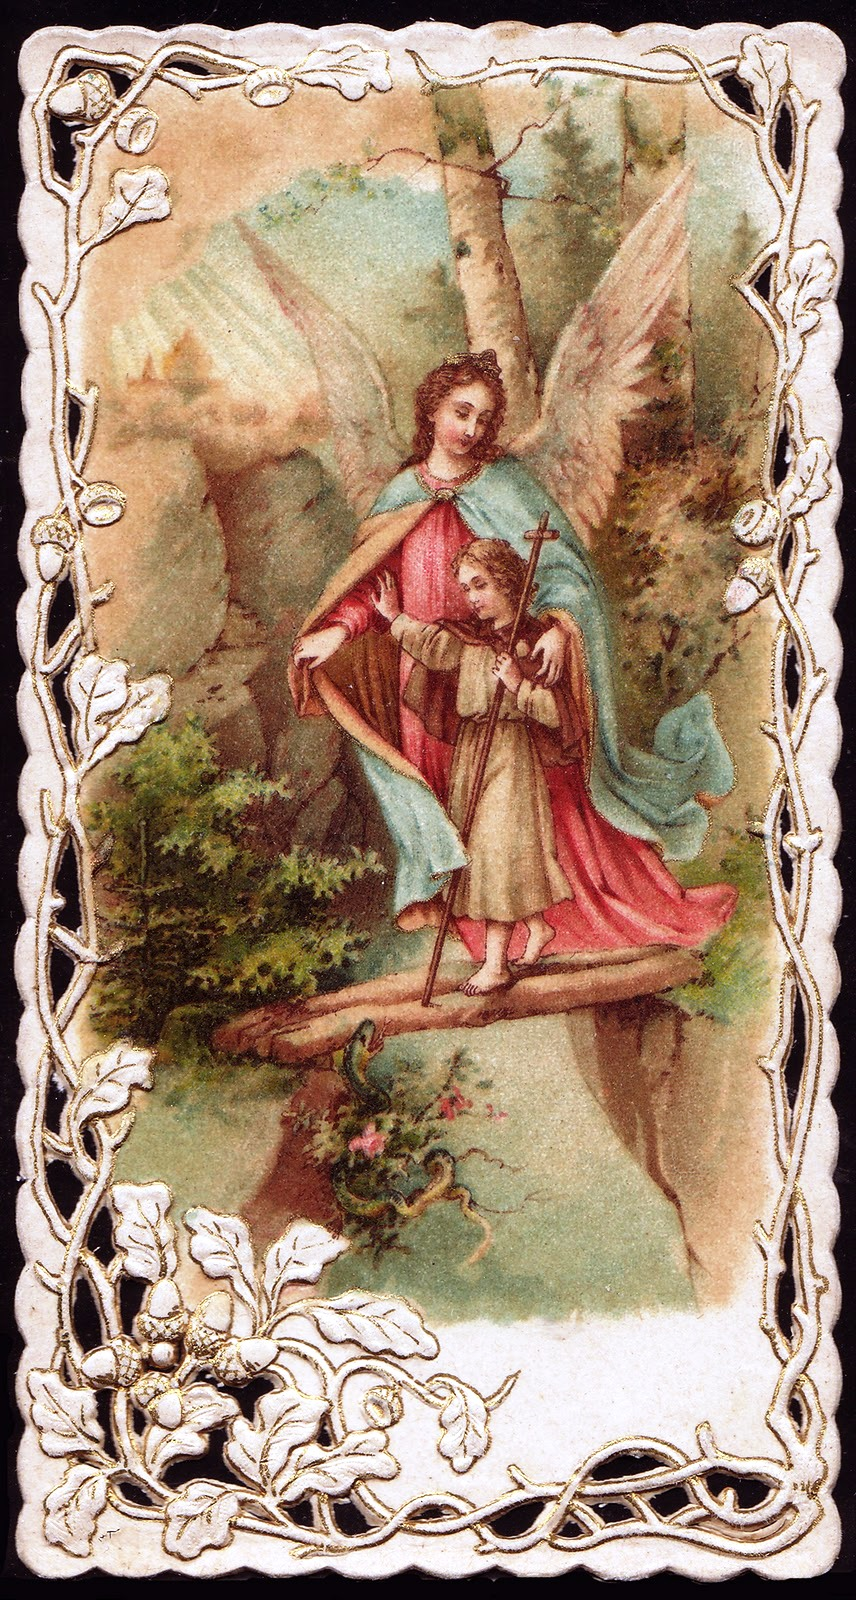 guardian angels - gift from Linda